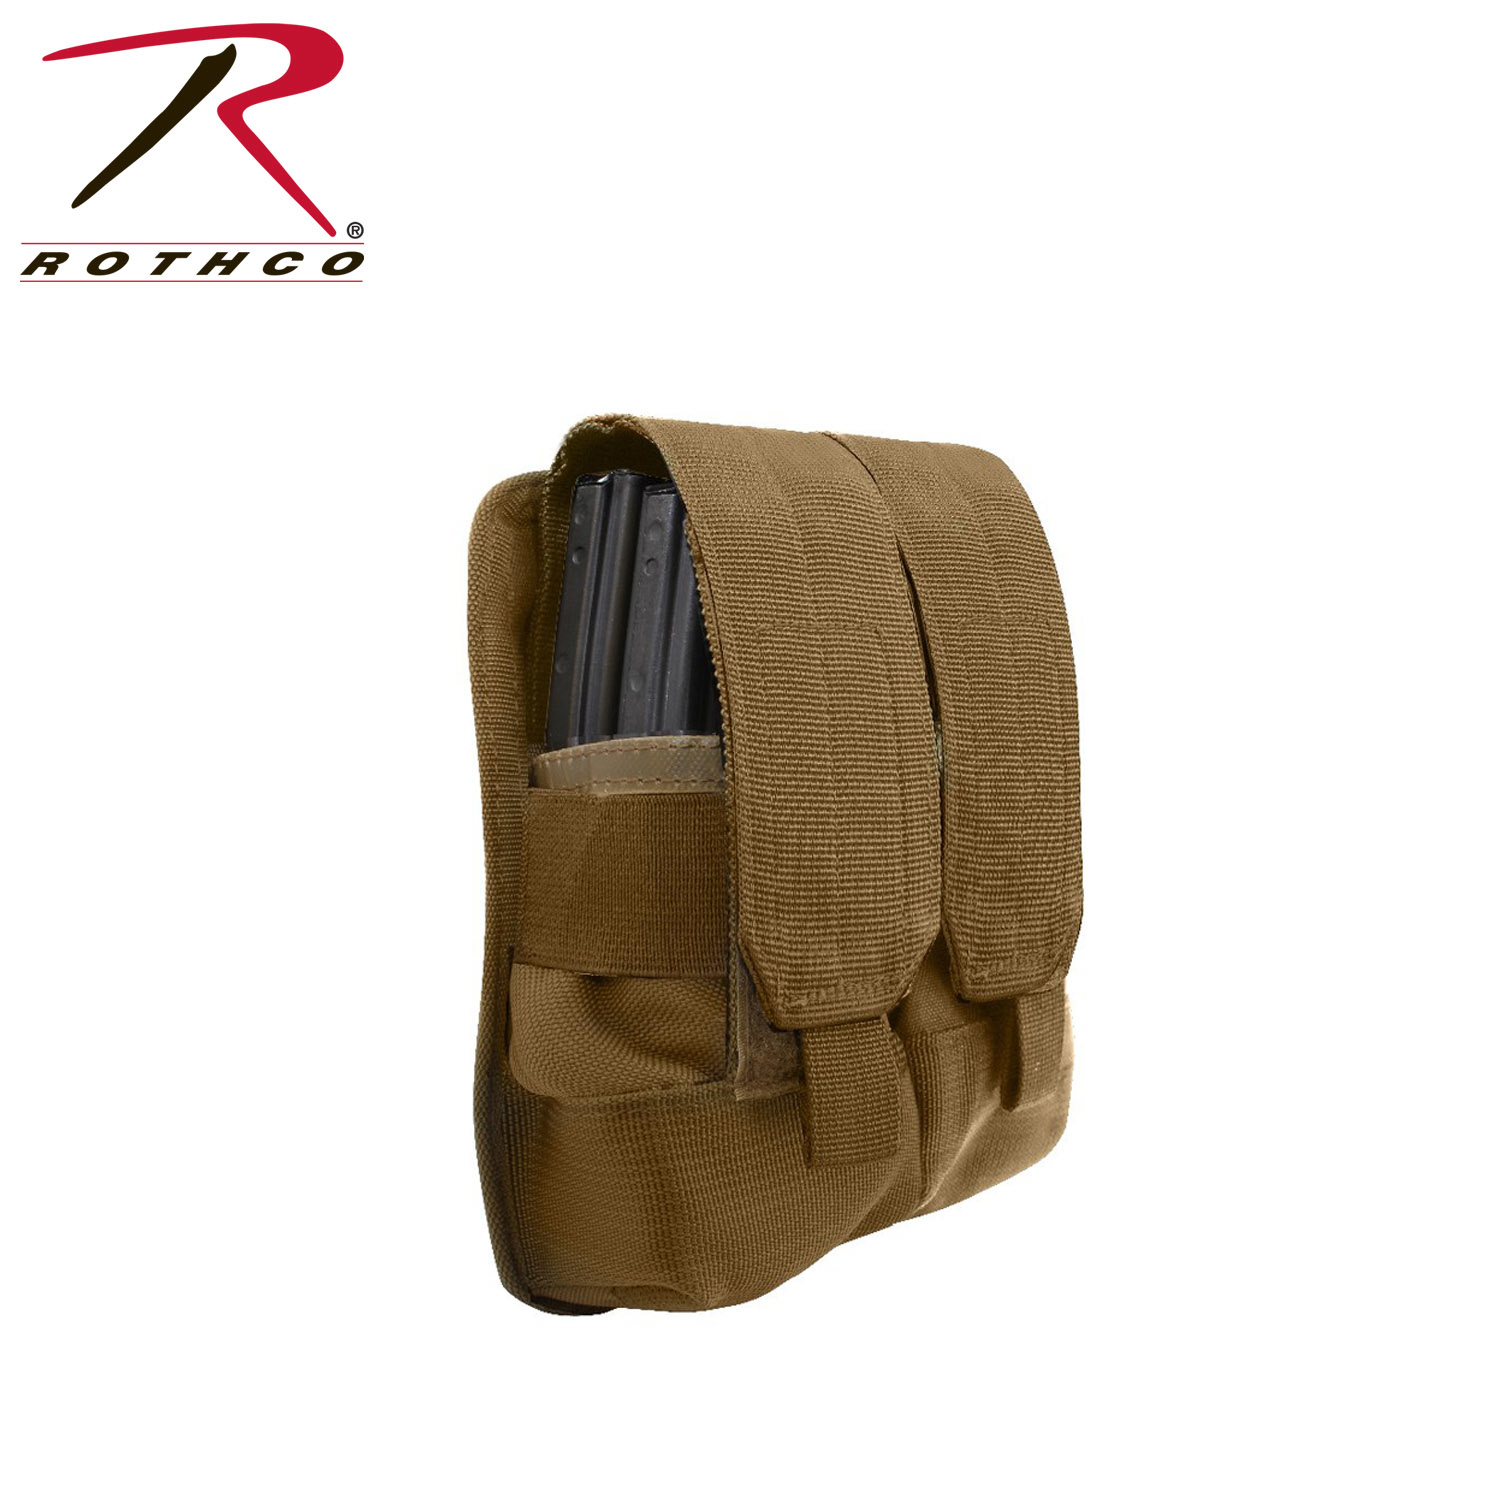 Rothco Universal Double Mag Rifle Pouch - Coyote Brown